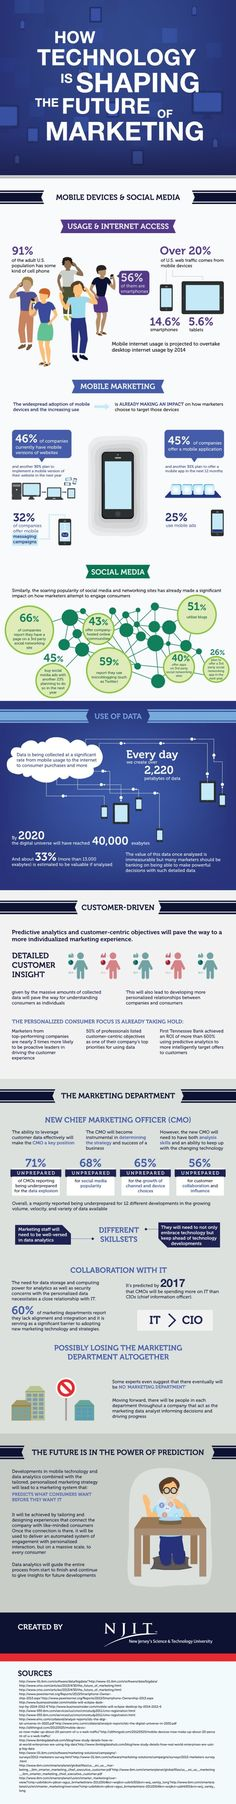 How #technology is Shaping the Future of #Marketing - #infographic